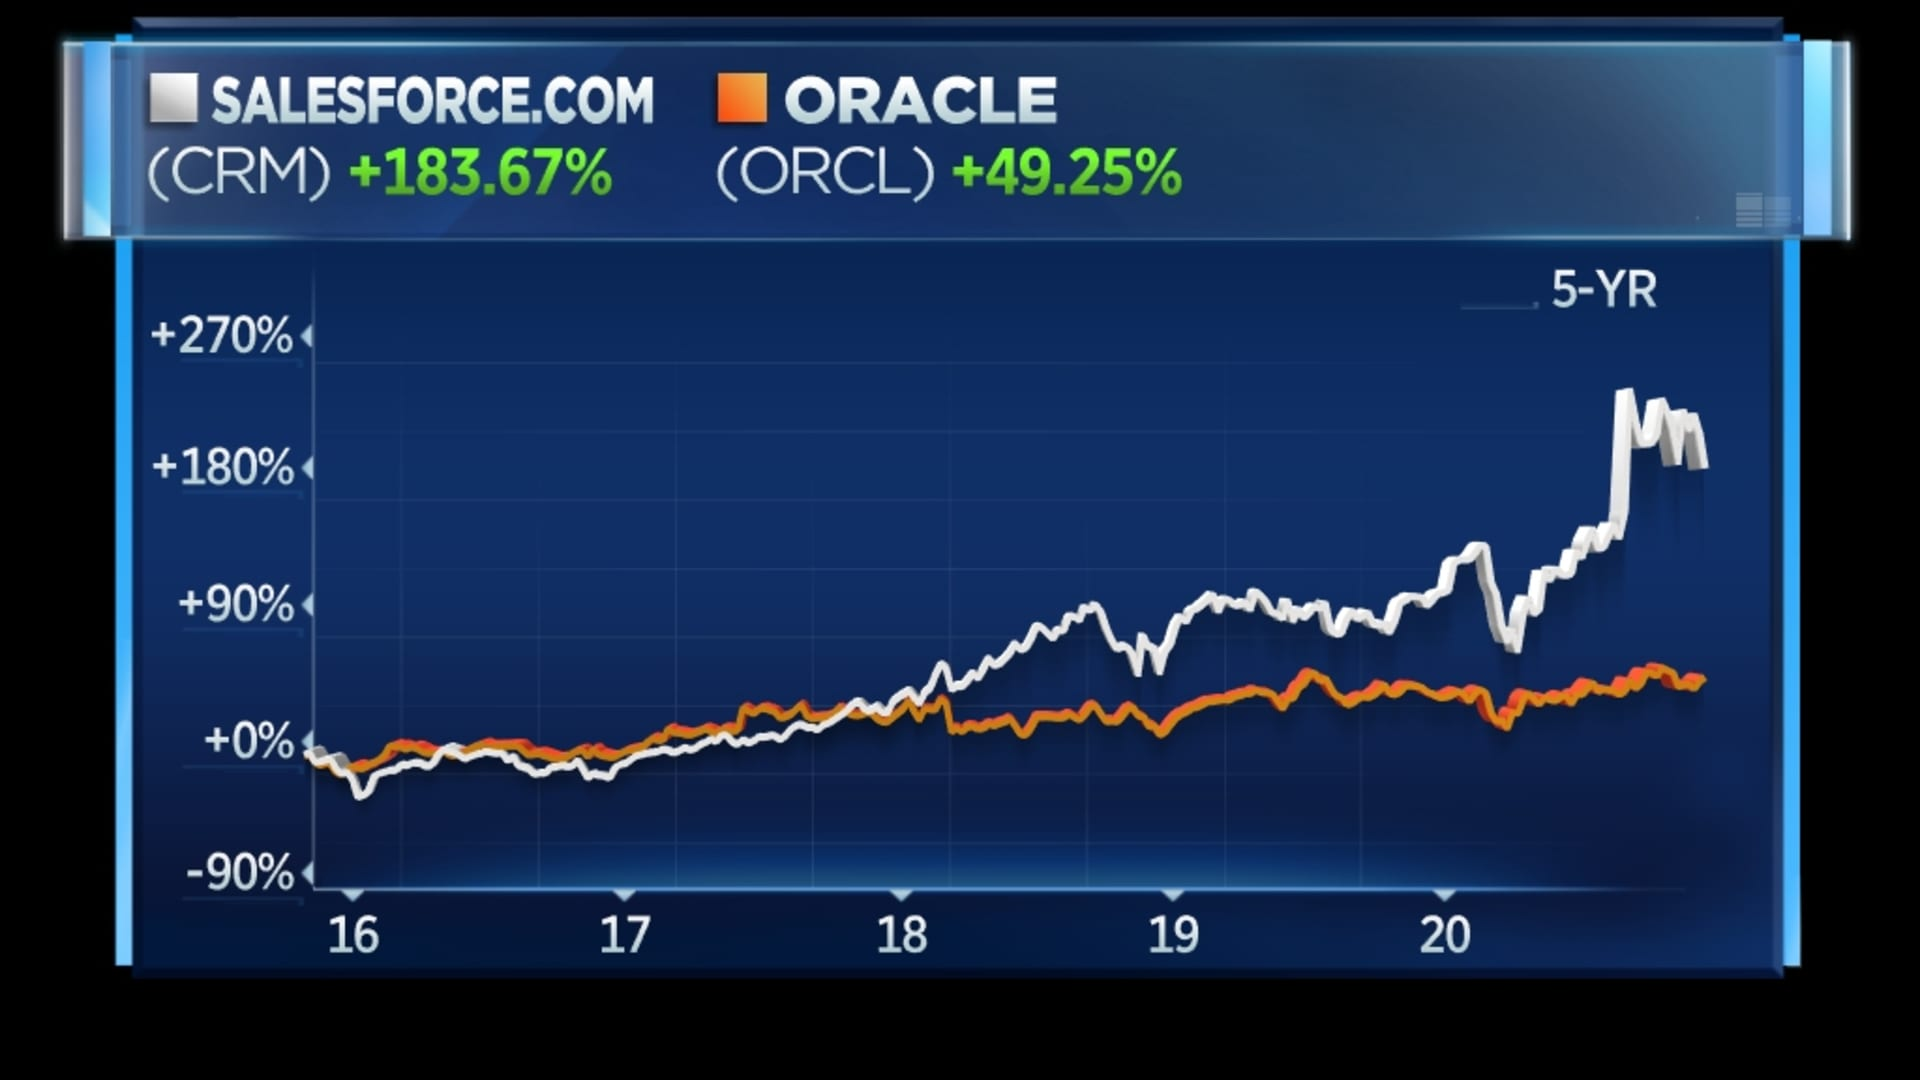 Salesforce vs. Oracle